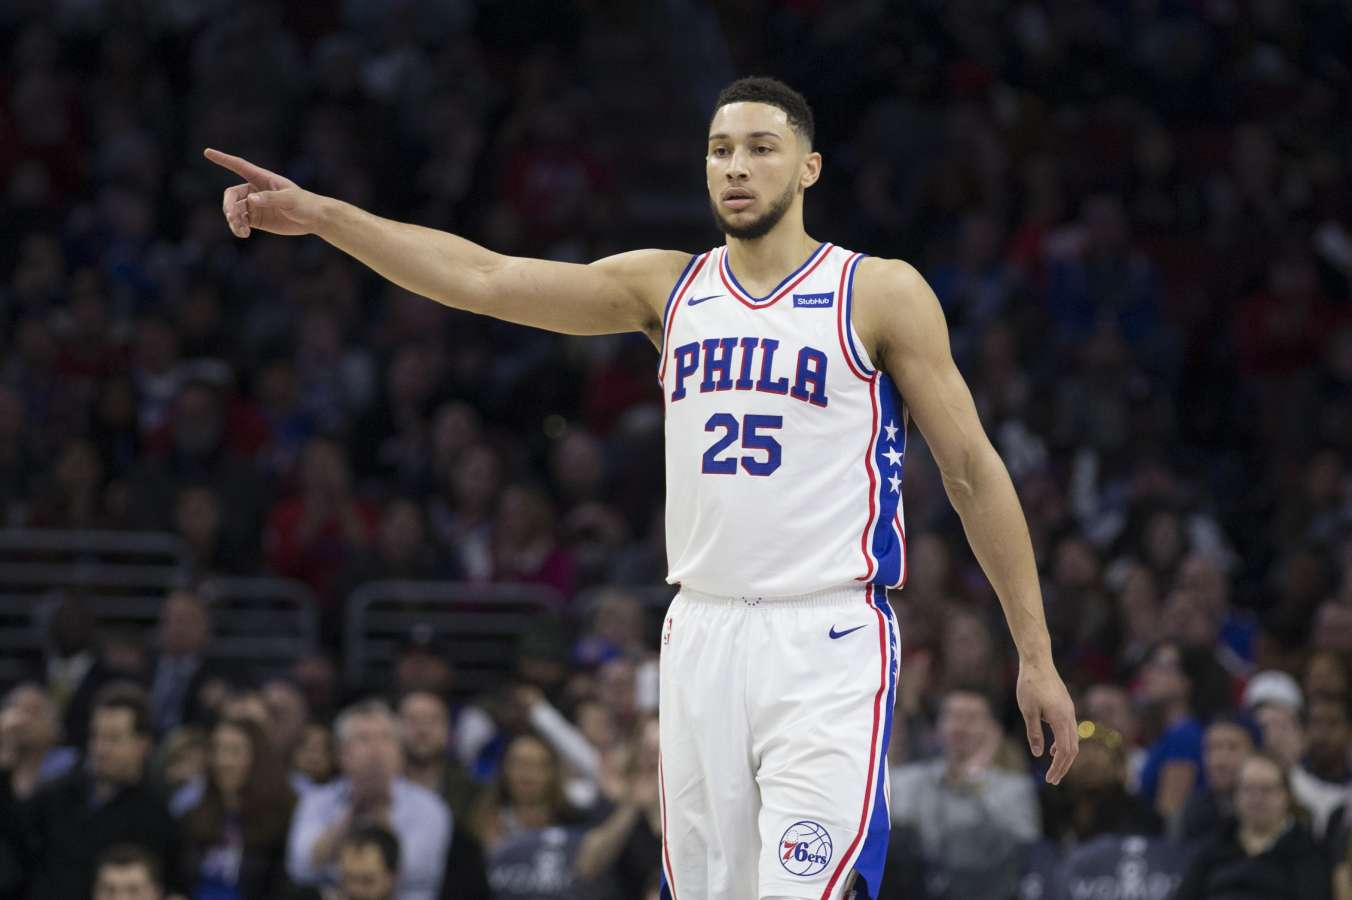 NBA Tuesday January 23: Betting Preview